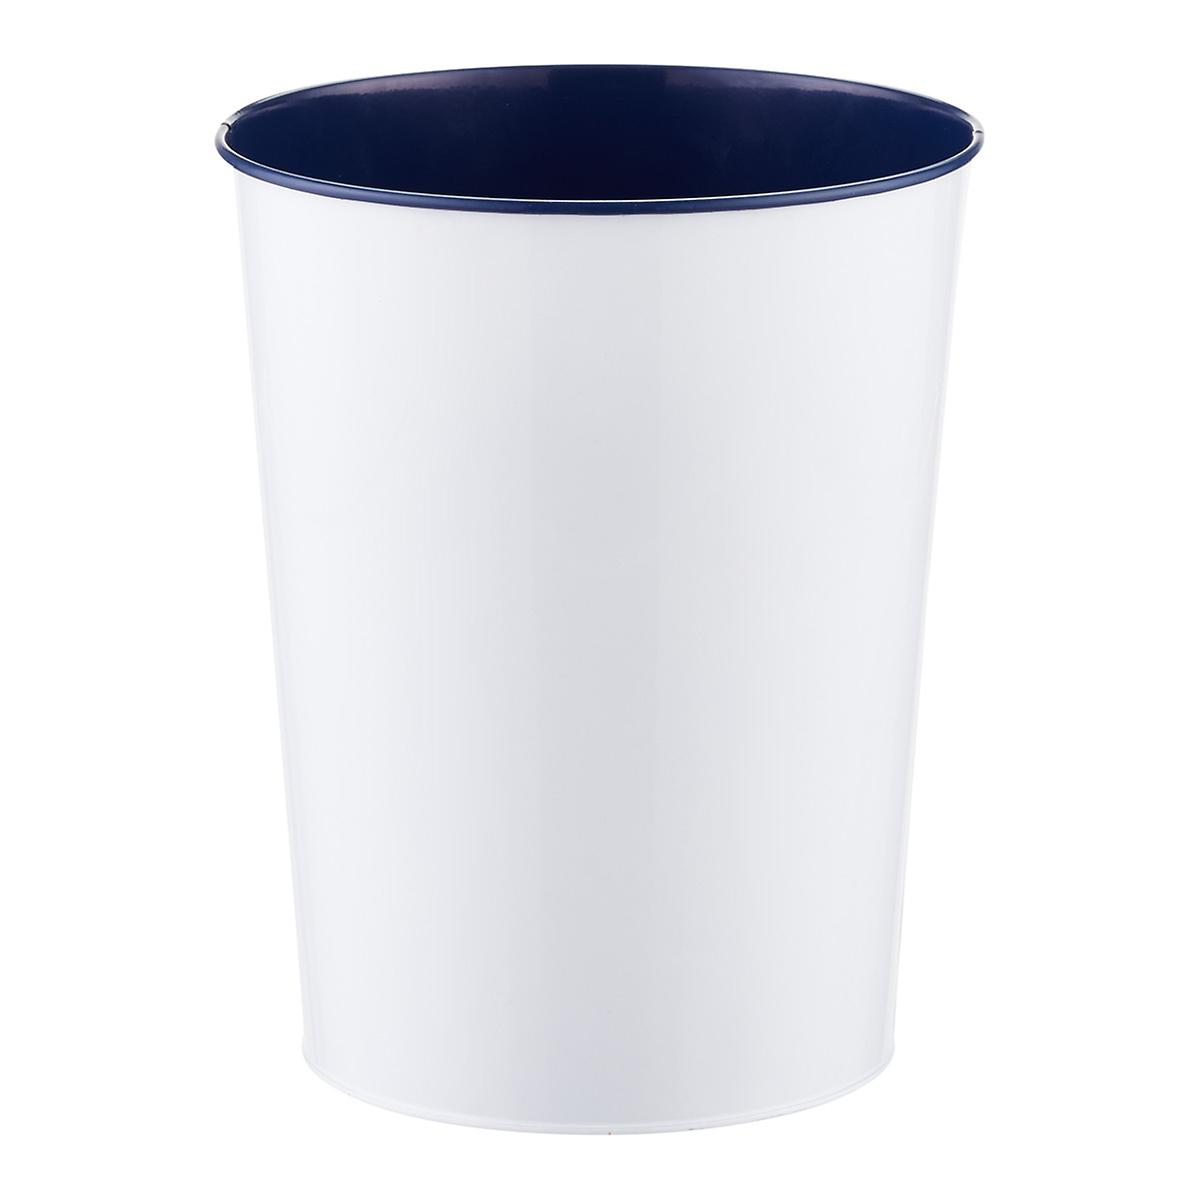 Best Three by Three Navy Vivid Metal Trash Can | The Container Store YV48